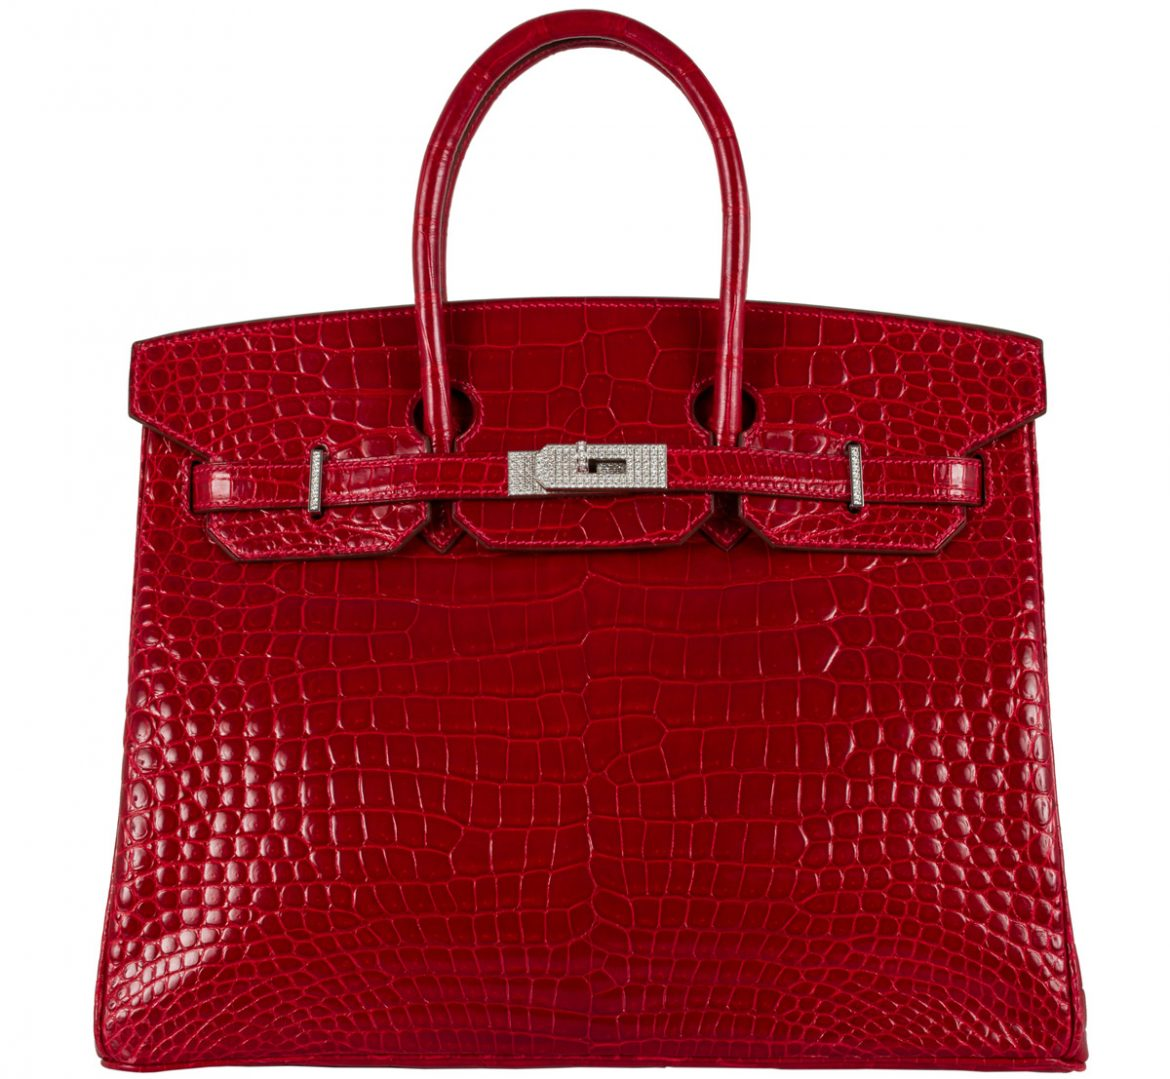 $298,000 Red Birkin Bag - World's Most Expensive